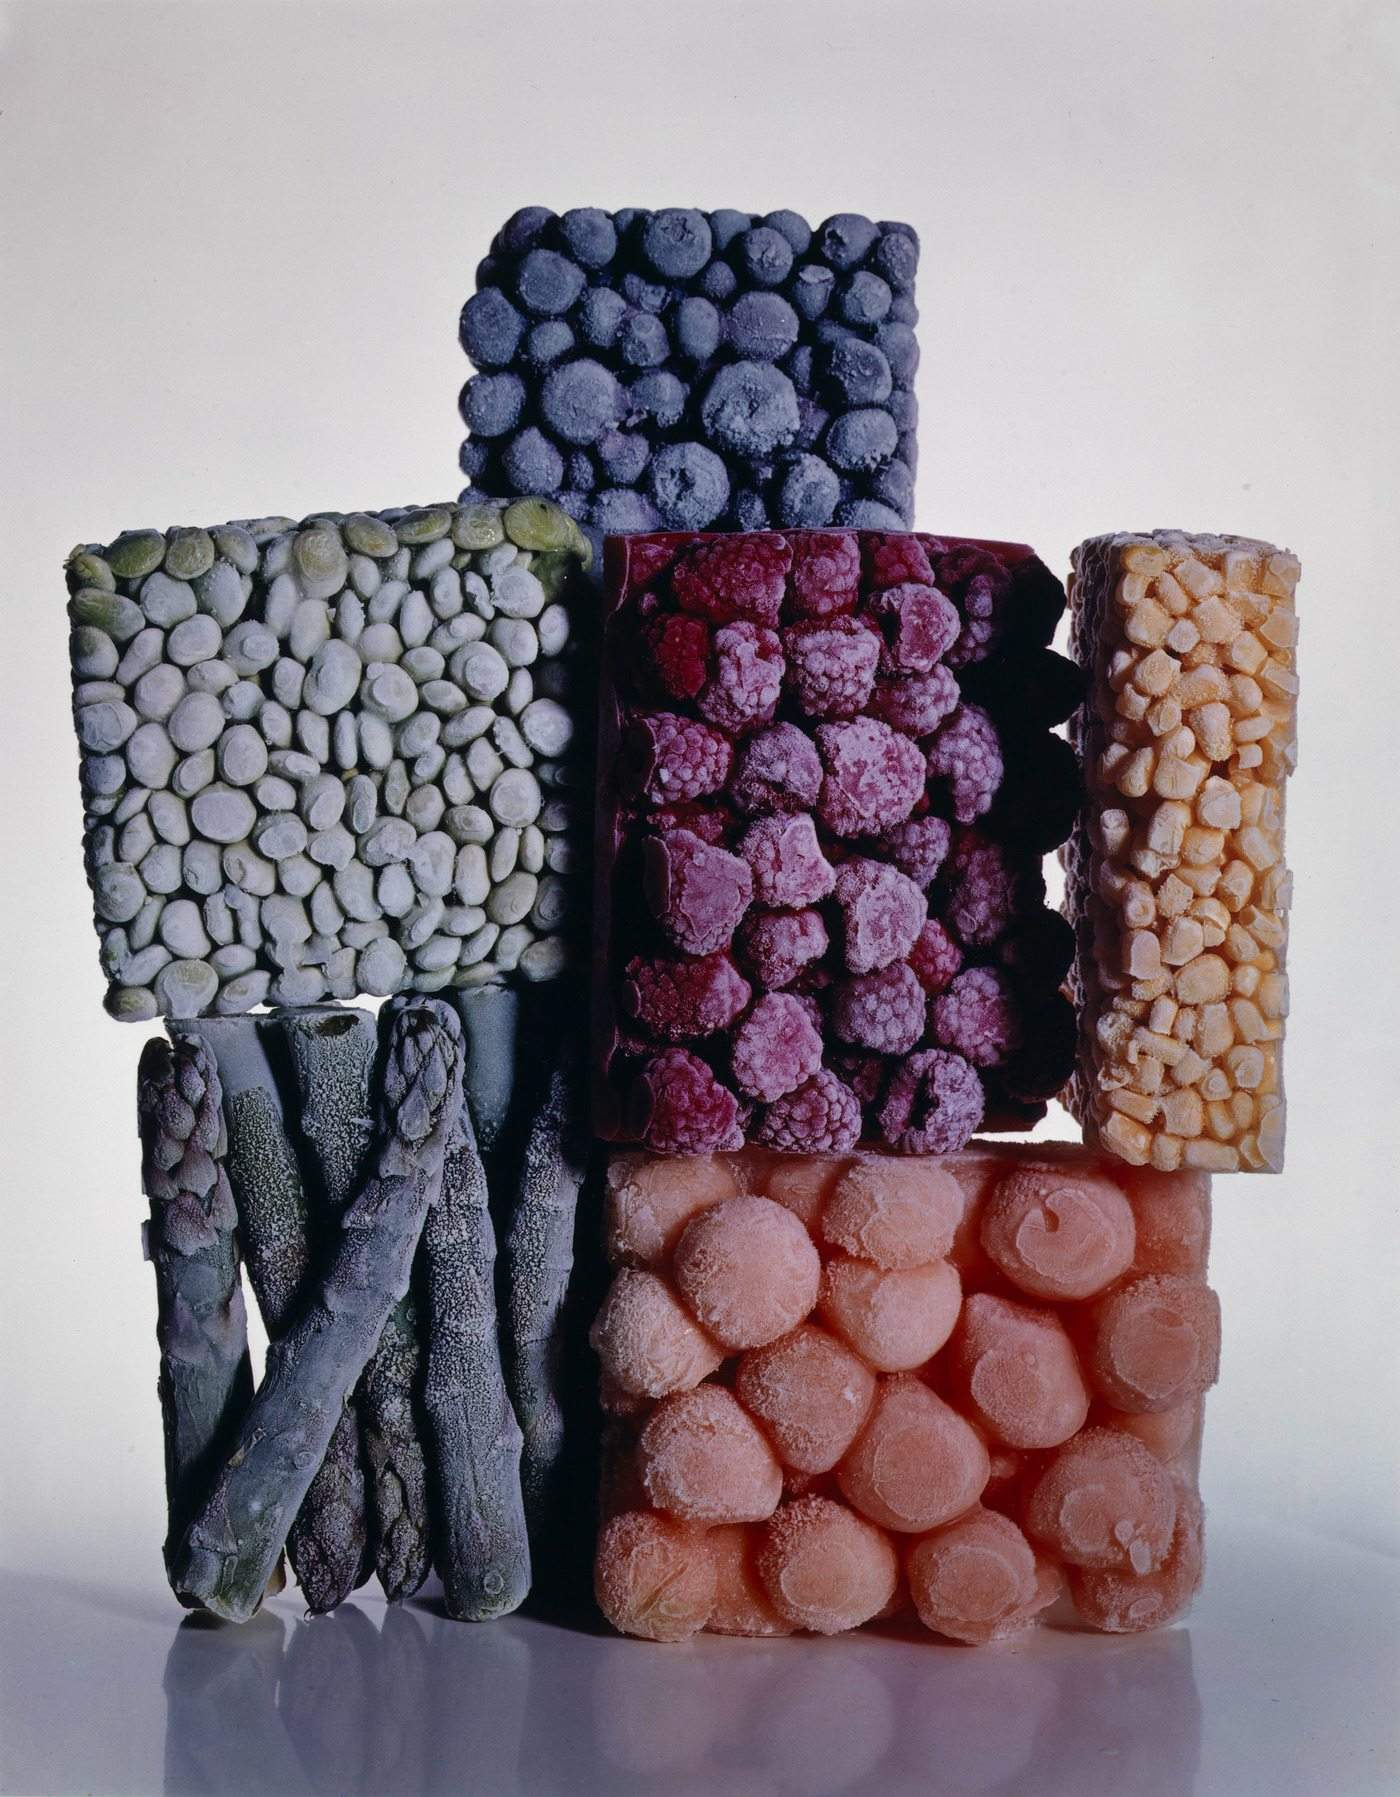 Frozen food © Irving Penn Foundation